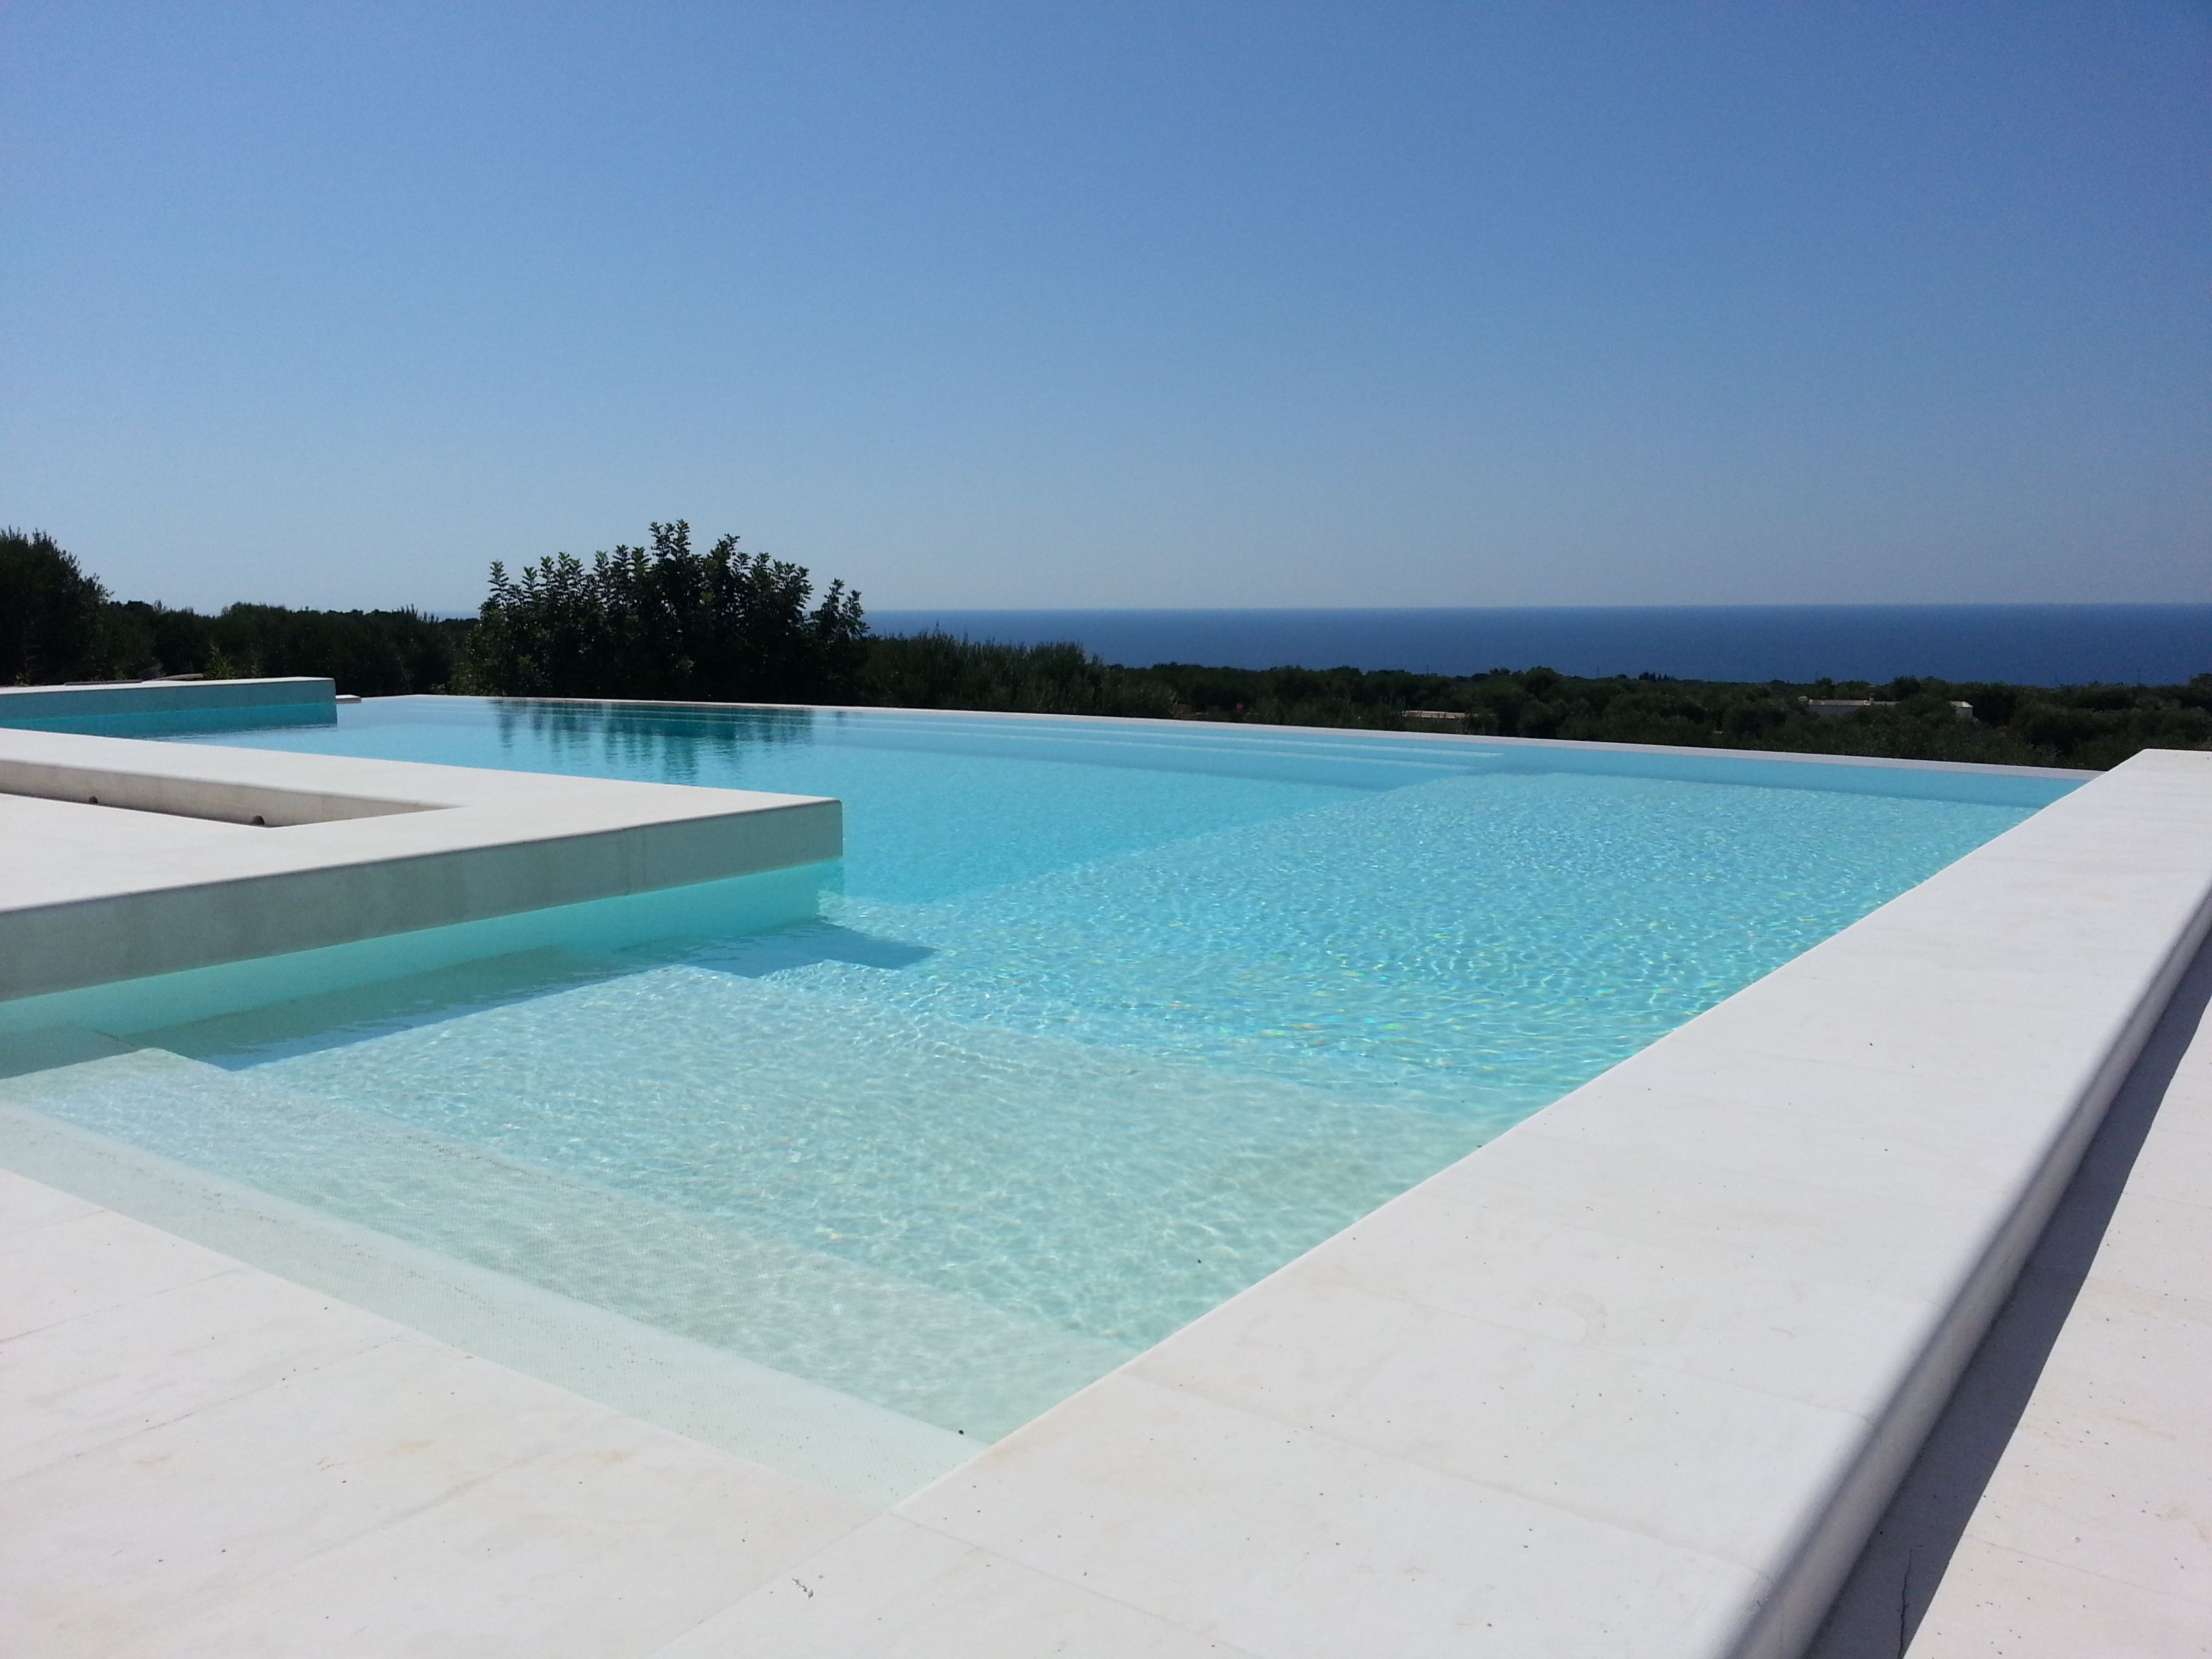 Piscina design sfioro living in luxury piscinas for Decorazioni piscina